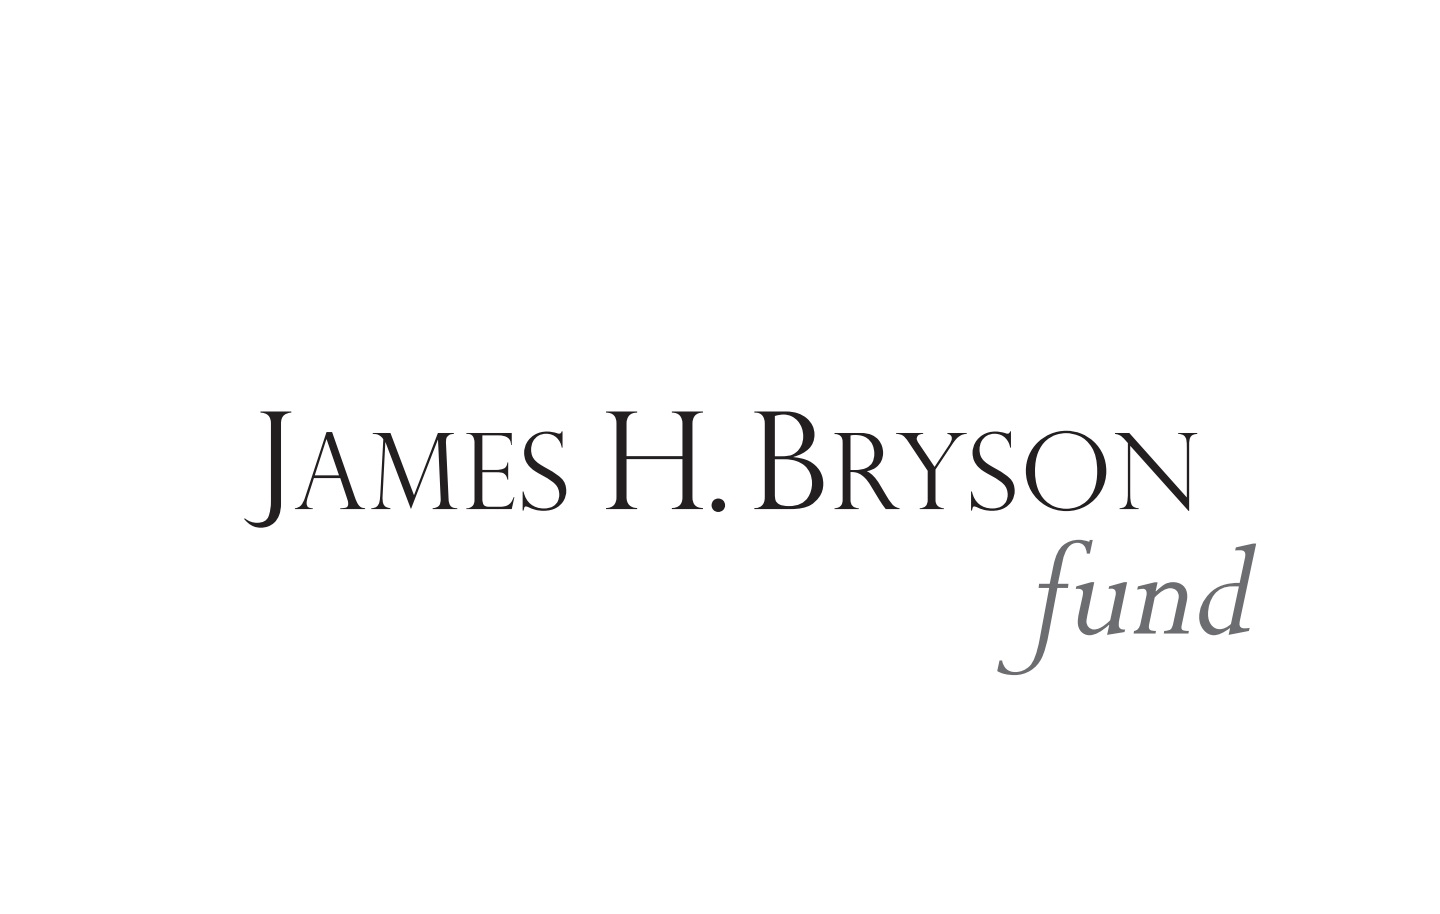 1. James H. Bryson fund